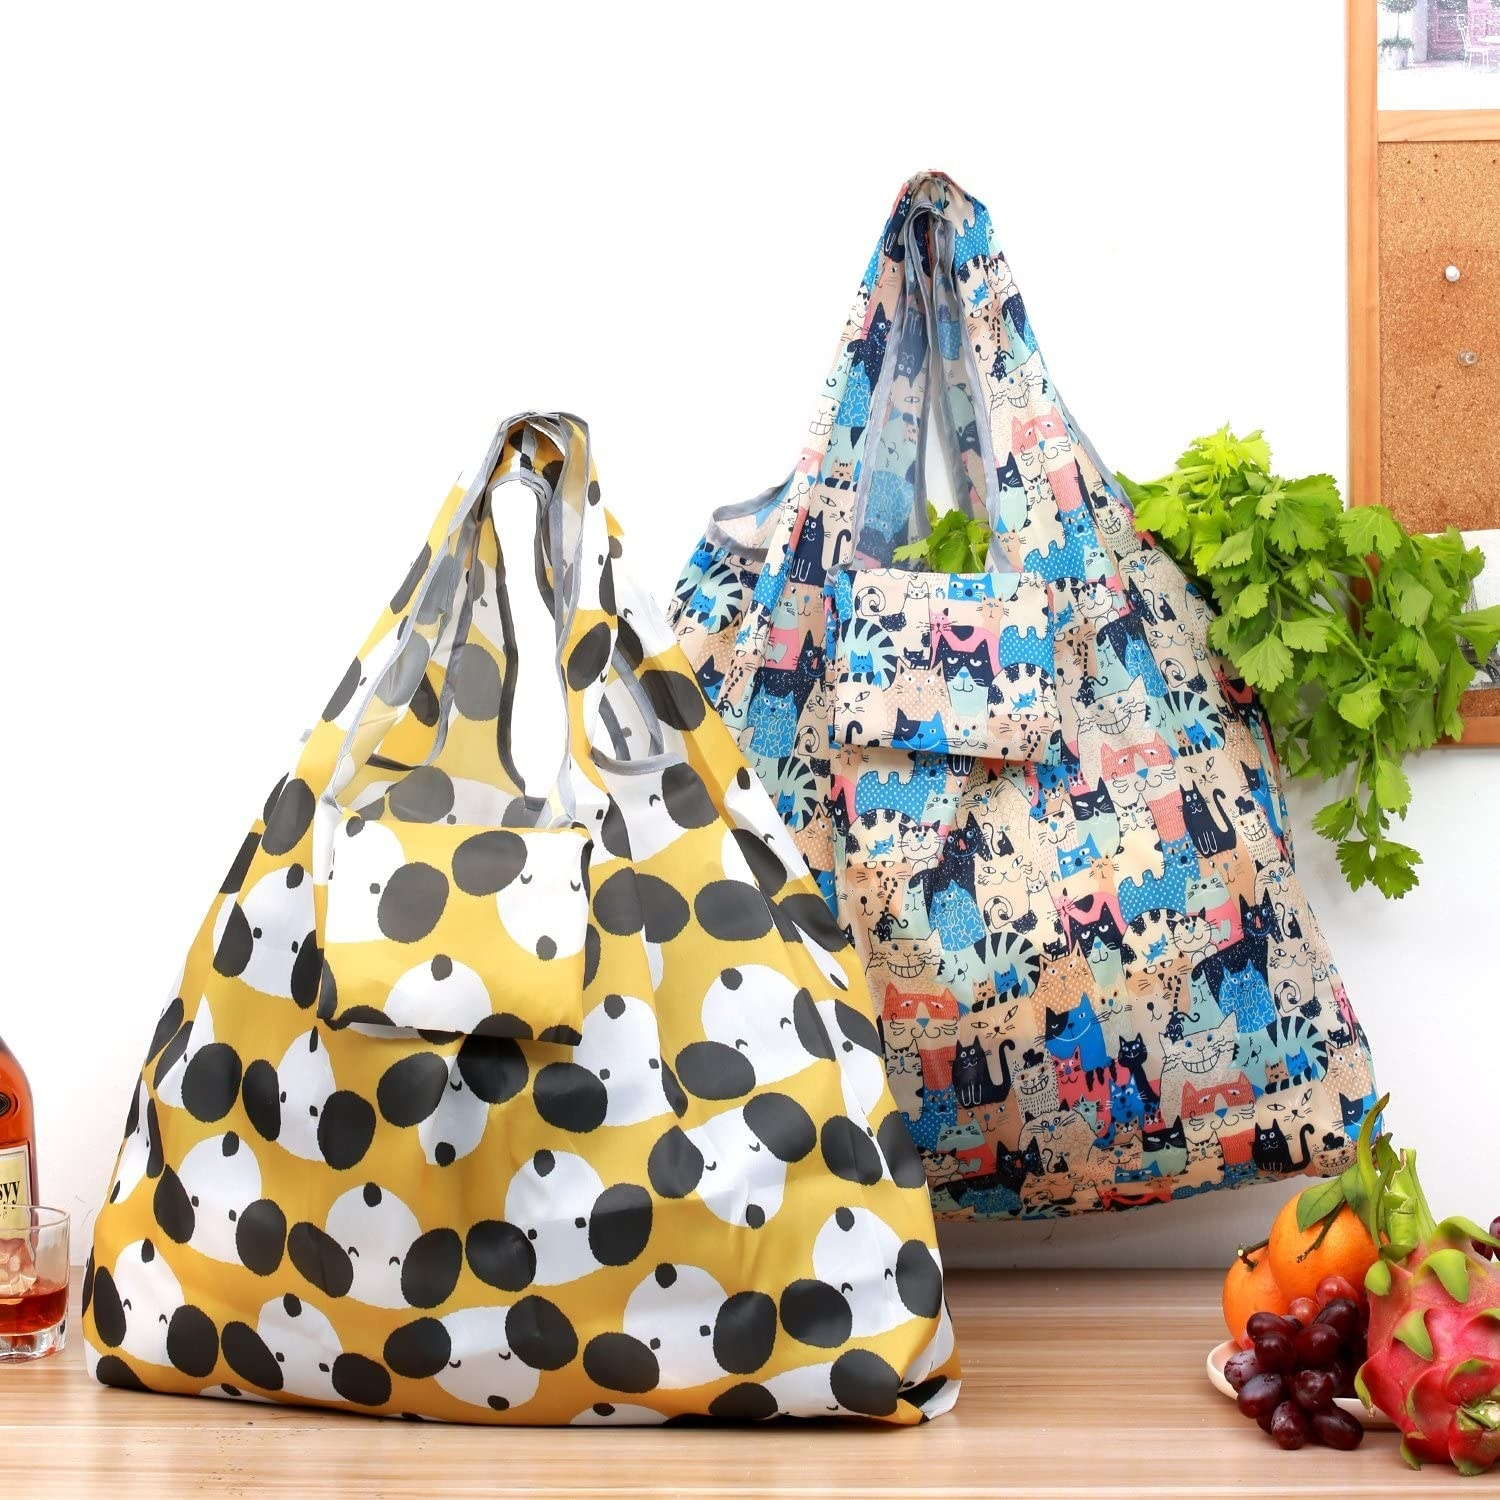 two nylon bag – one yellow with illustrations of a dog in black and white and the other with illustrations of cats in blues, oranges, and reds